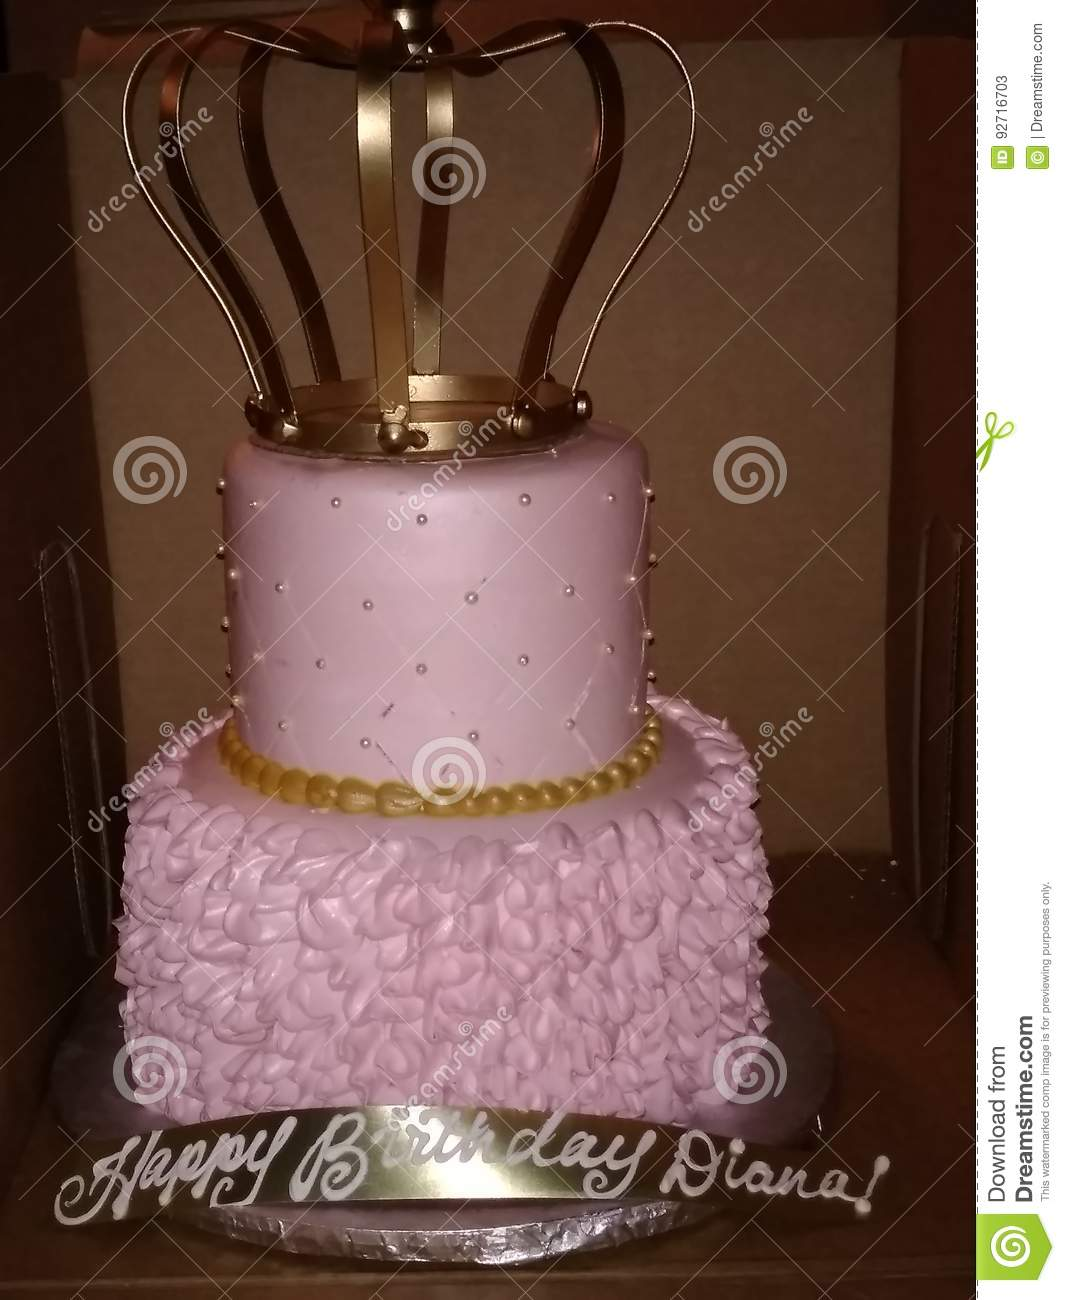 Groovy Queen Birthday Cake Stock Image Image Of Queen Birthday 92716703 Funny Birthday Cards Online Alyptdamsfinfo